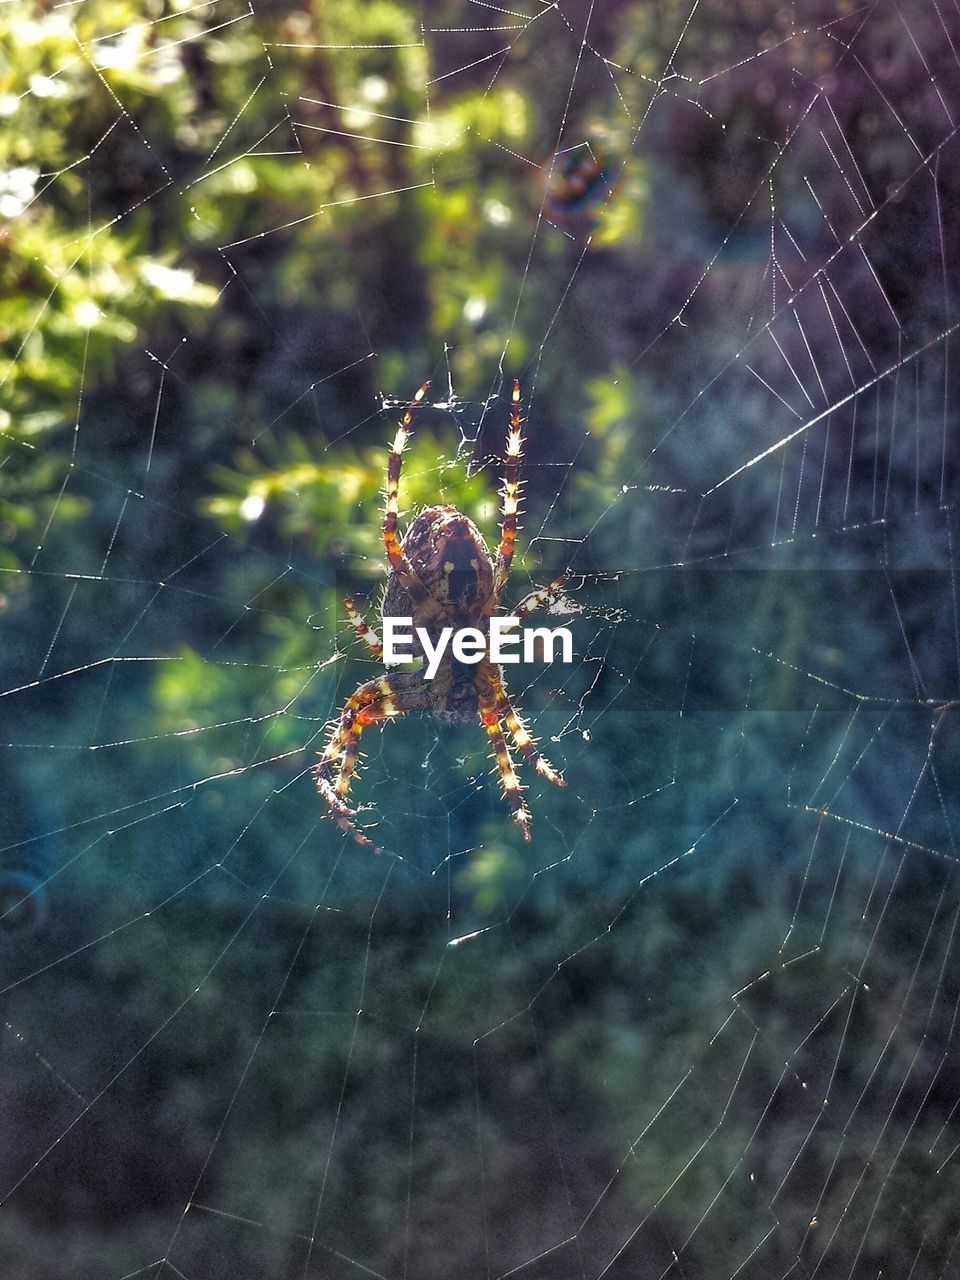 spider web, spider, web, survival, one animal, animals in the wild, animal themes, spinning, focus on foreground, close-up, insect, nature, weaving, outdoors, day, animal leg, no people, fragility, animal wildlife